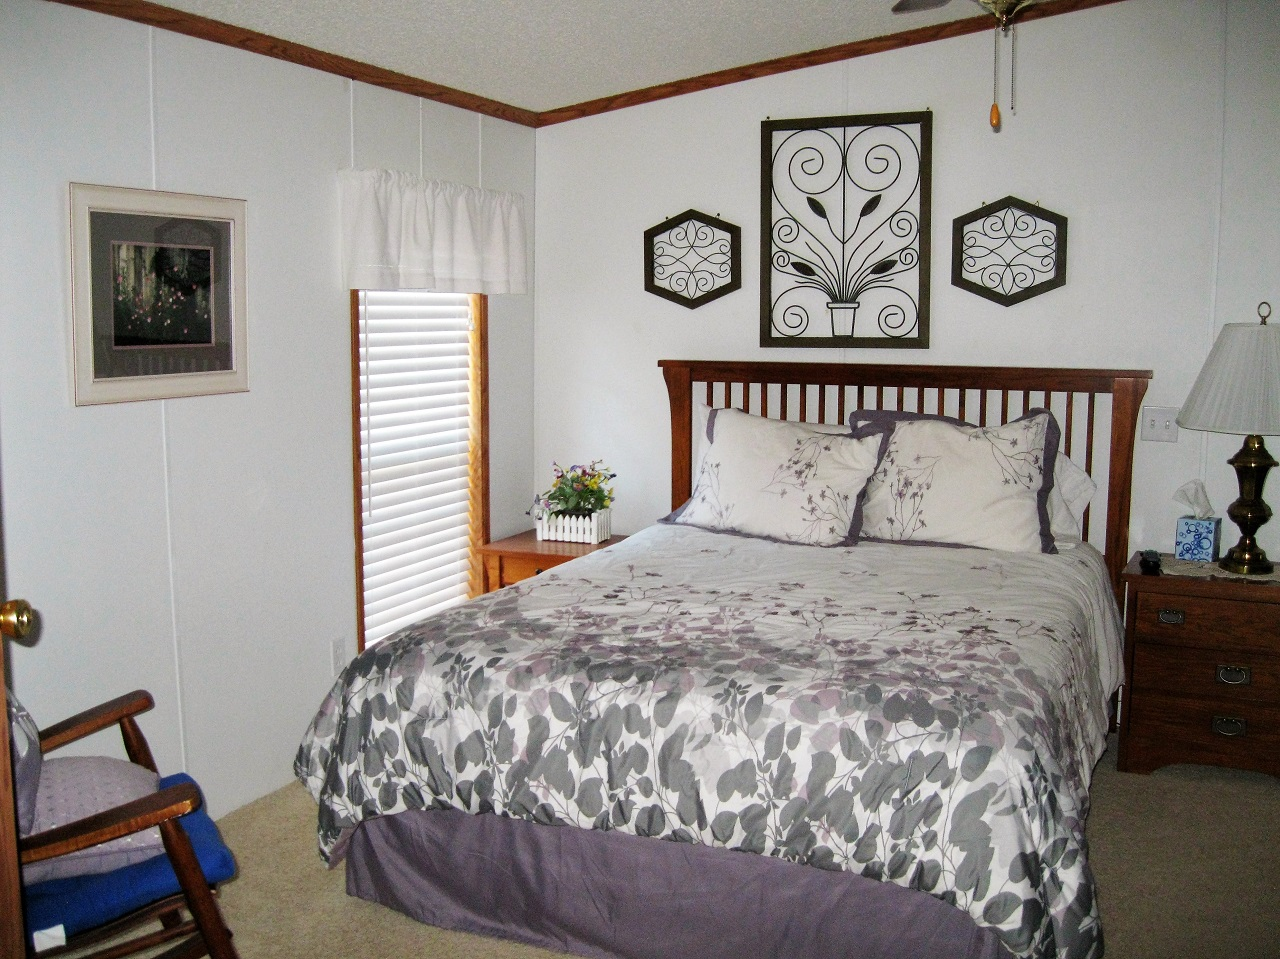 9 Seminole master bedroom